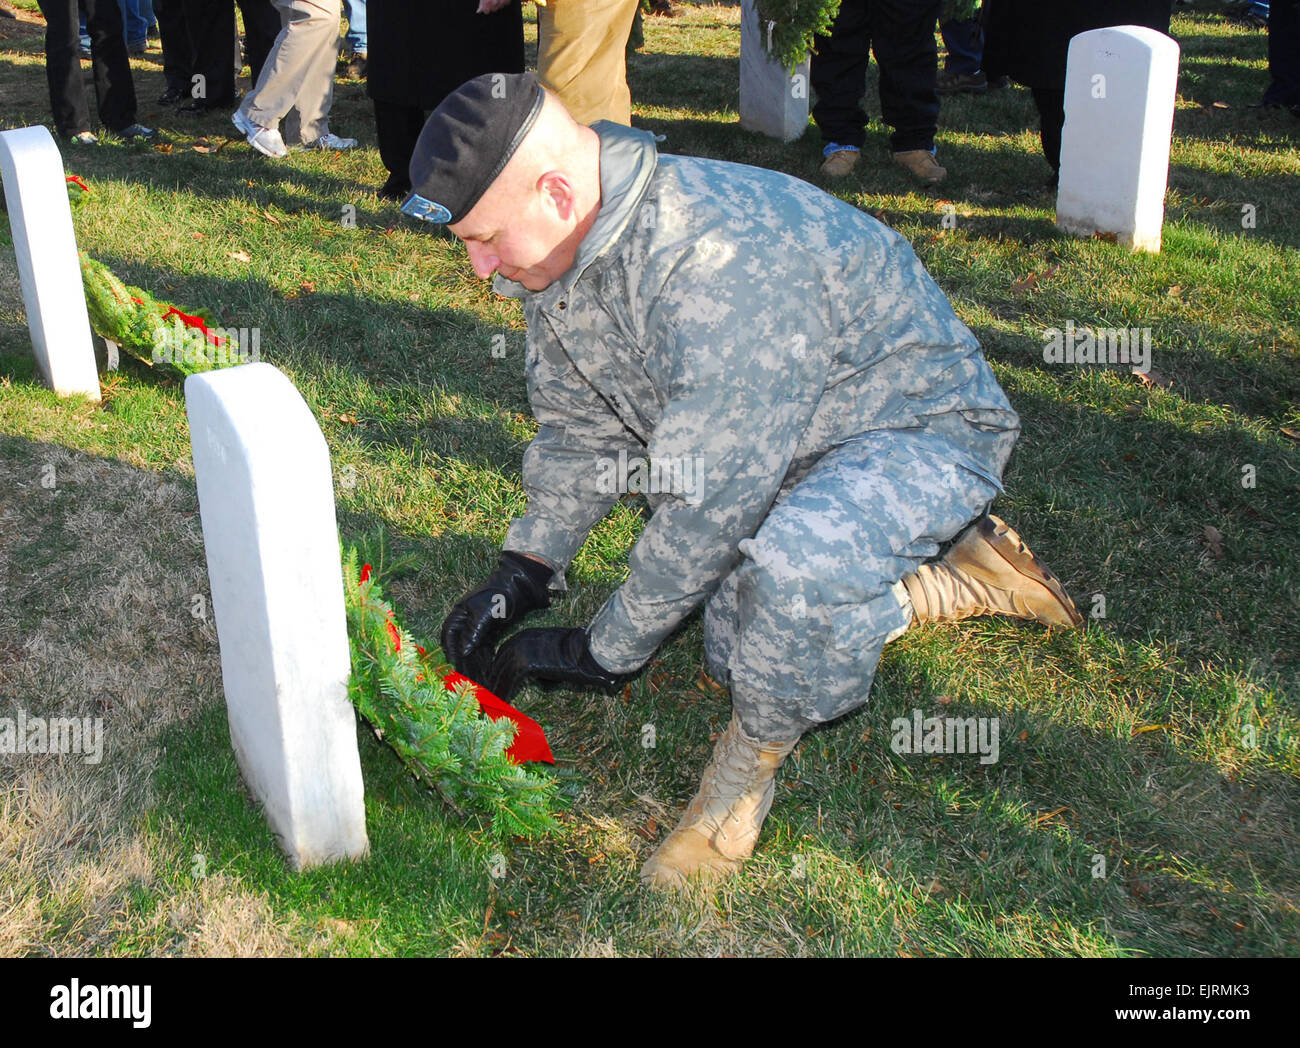 Maj. Gen. Richard J. Rowe Jr., commander, Military District of Washington, lays a wreath at the base of a veteran's - Stock Image